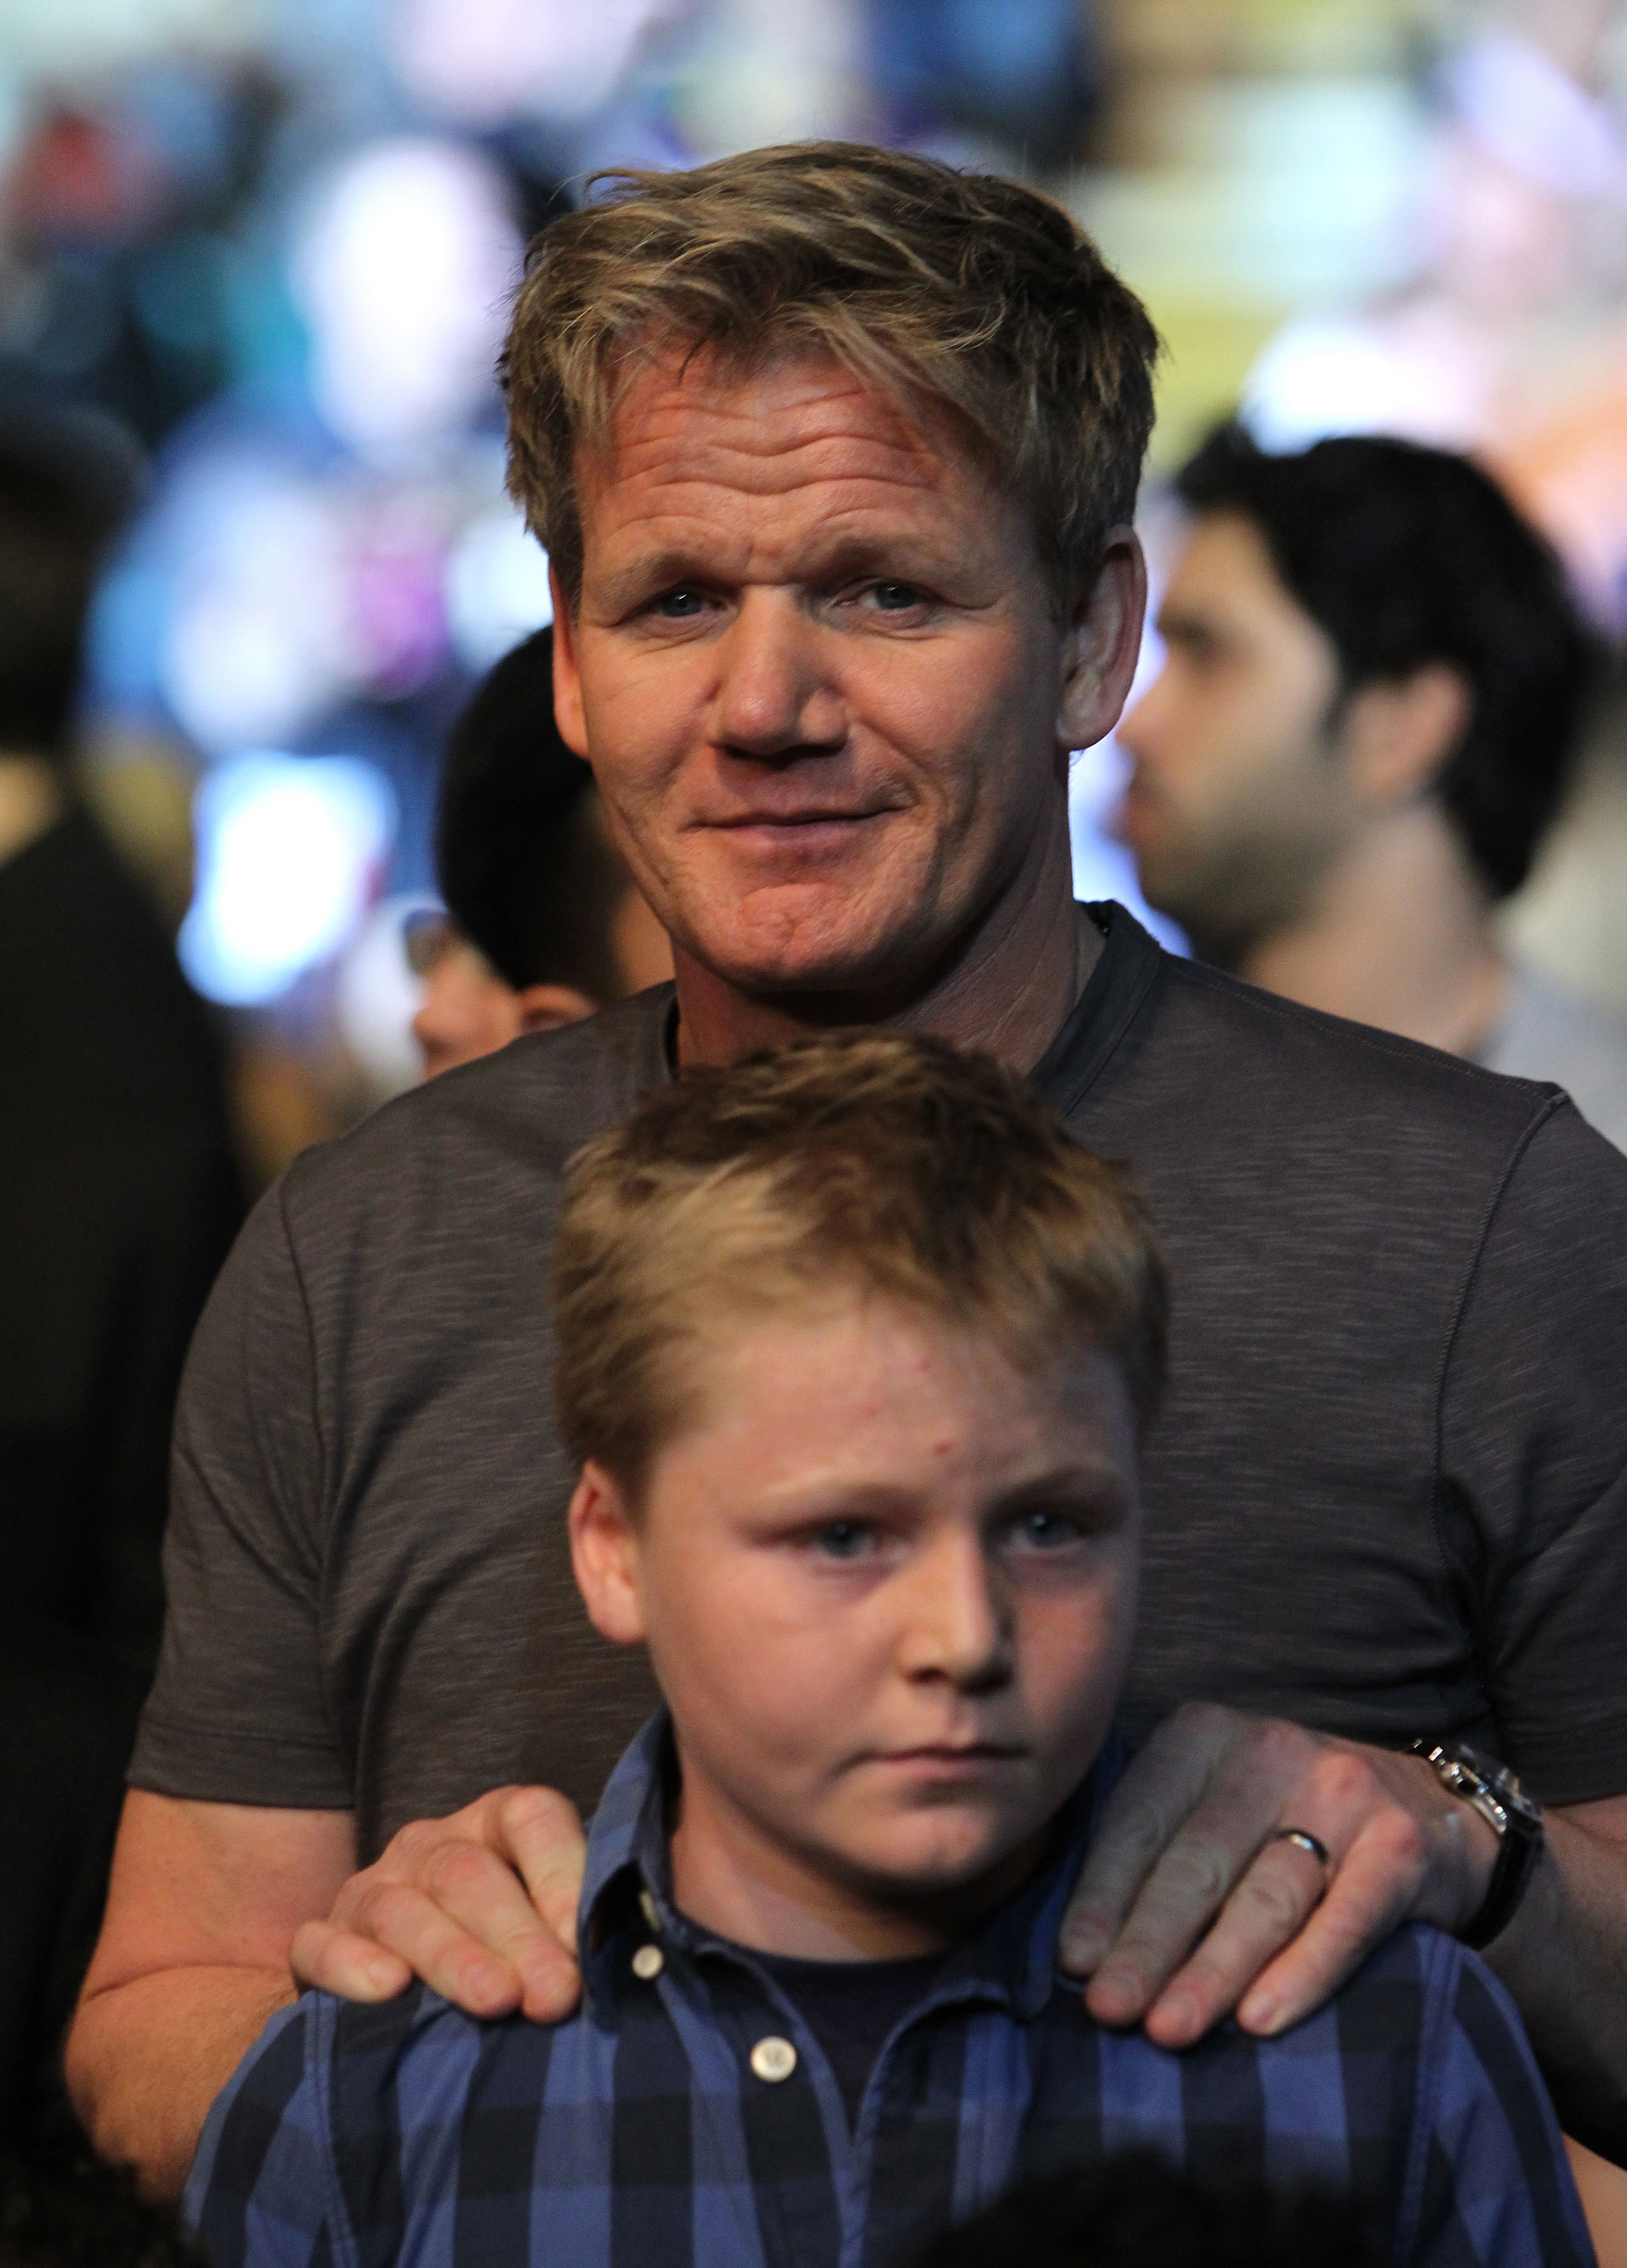 LAS VEGAS, NV - DECEMBER 30:  Gordon Ramsay in attendance during the UFC 141 event at the MGM Grand Garden Arena on December 30, 2011 in Las Vegas, Nevada.  (Photo by Josh Hedges/Zuffa LLC/Zuffa LLC via Getty Images) *** Local Caption *** Gordon Ramsay